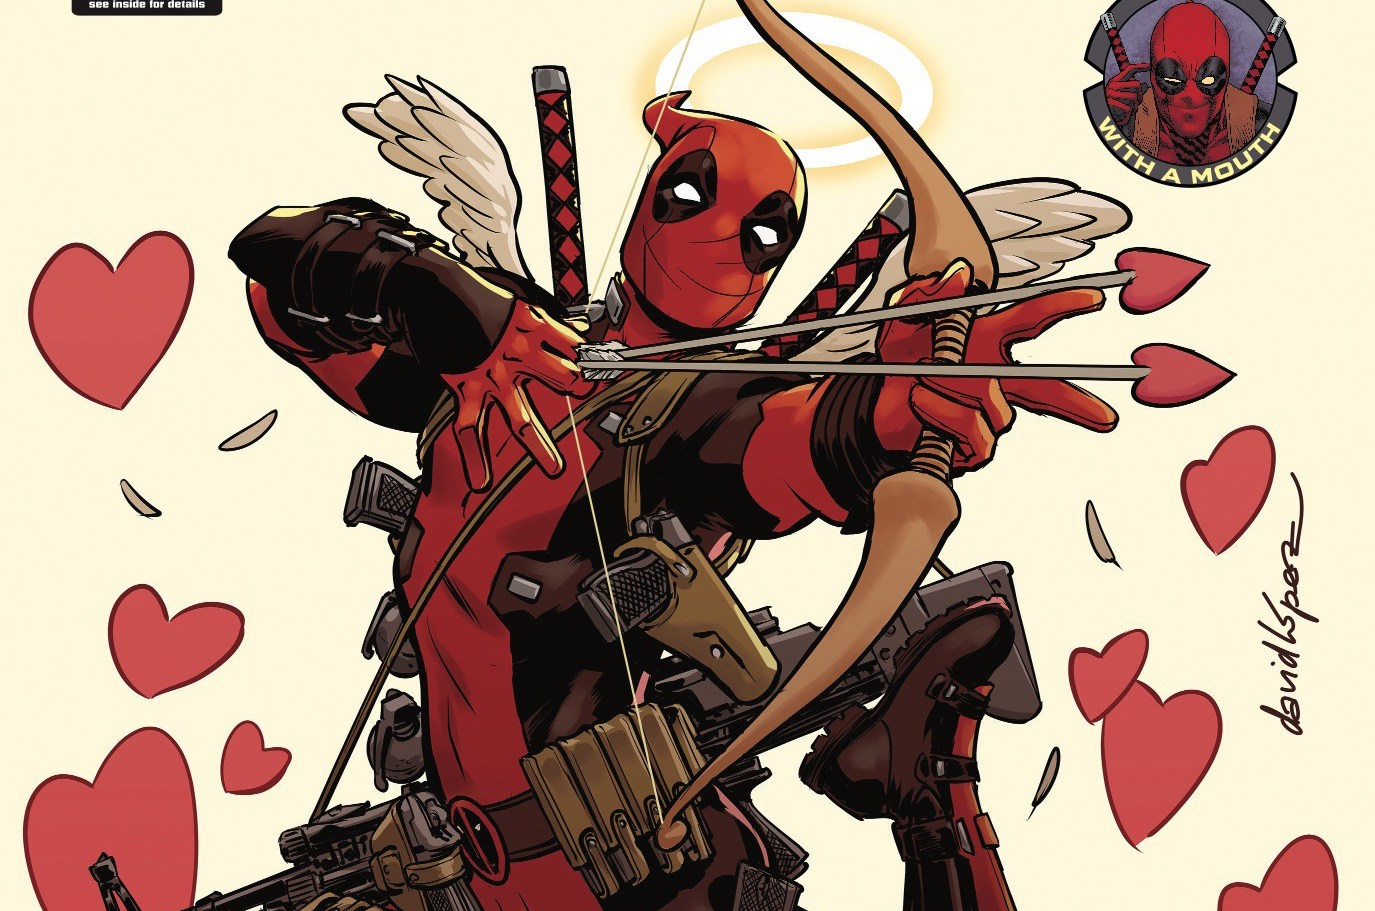 The premise behind this issue is divine. Deadpool + Valentine's Day = comic hilarity. Or at least, writer Gerry Duggan has the ability to do something a little bit different! We explore, review, and attempt to understand the insanity of Deadpool and romance, but is it good?